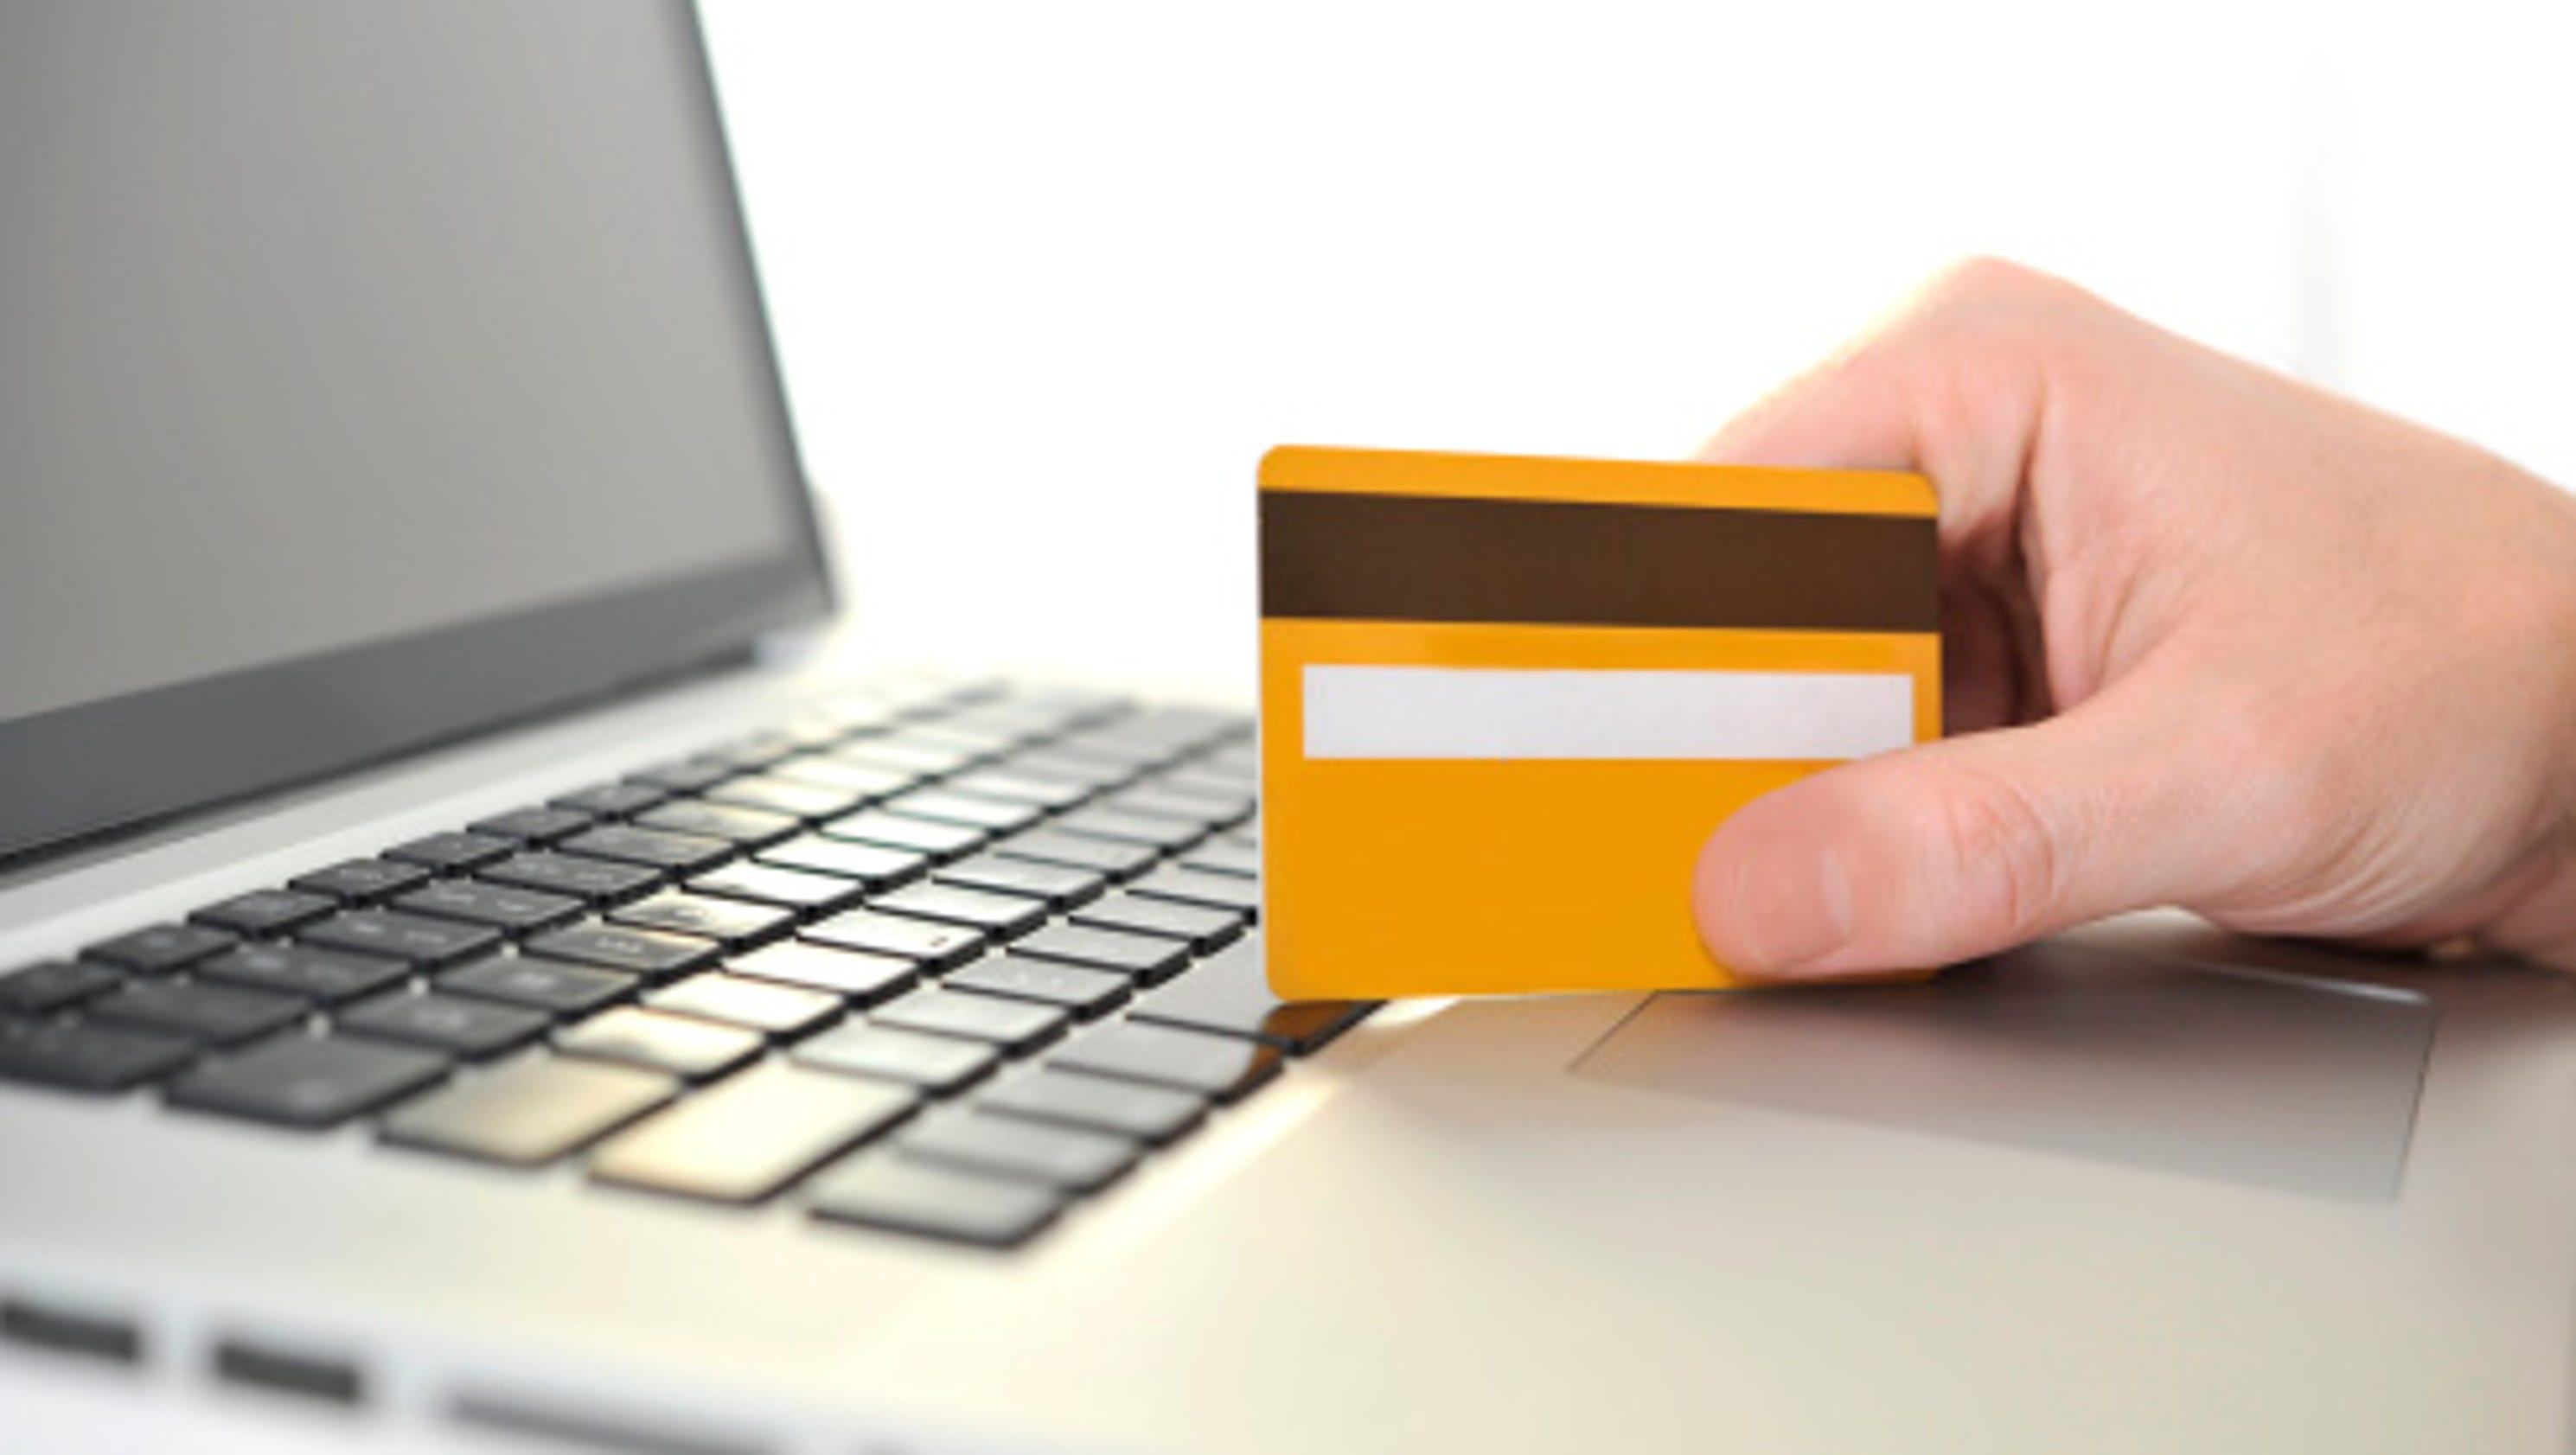 4 places you should not swipe your debit card